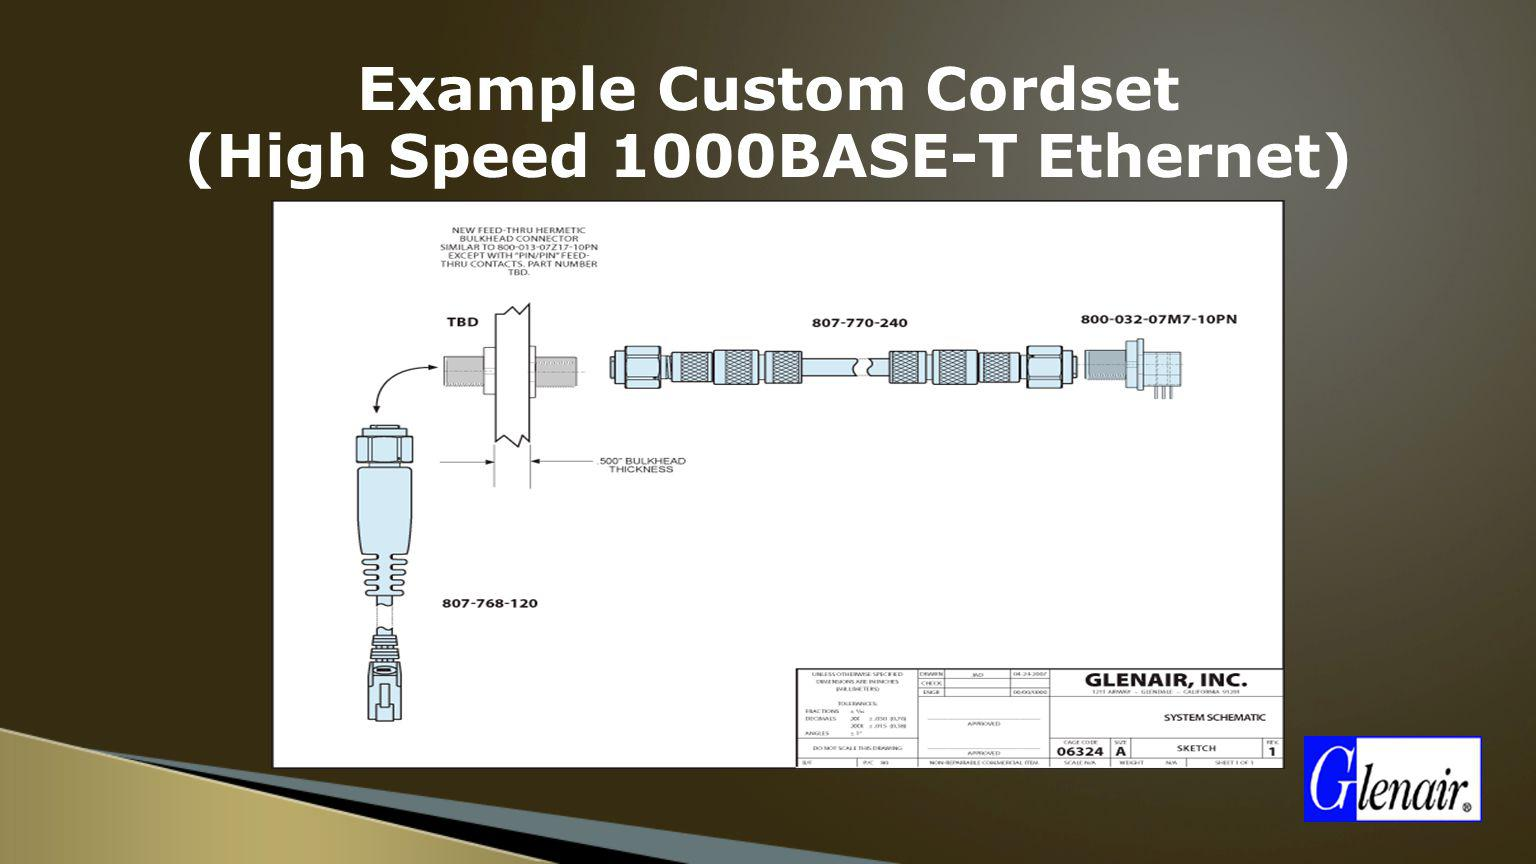 Example Custom Cordset (High Speed 1000BASE-T Ethernet)